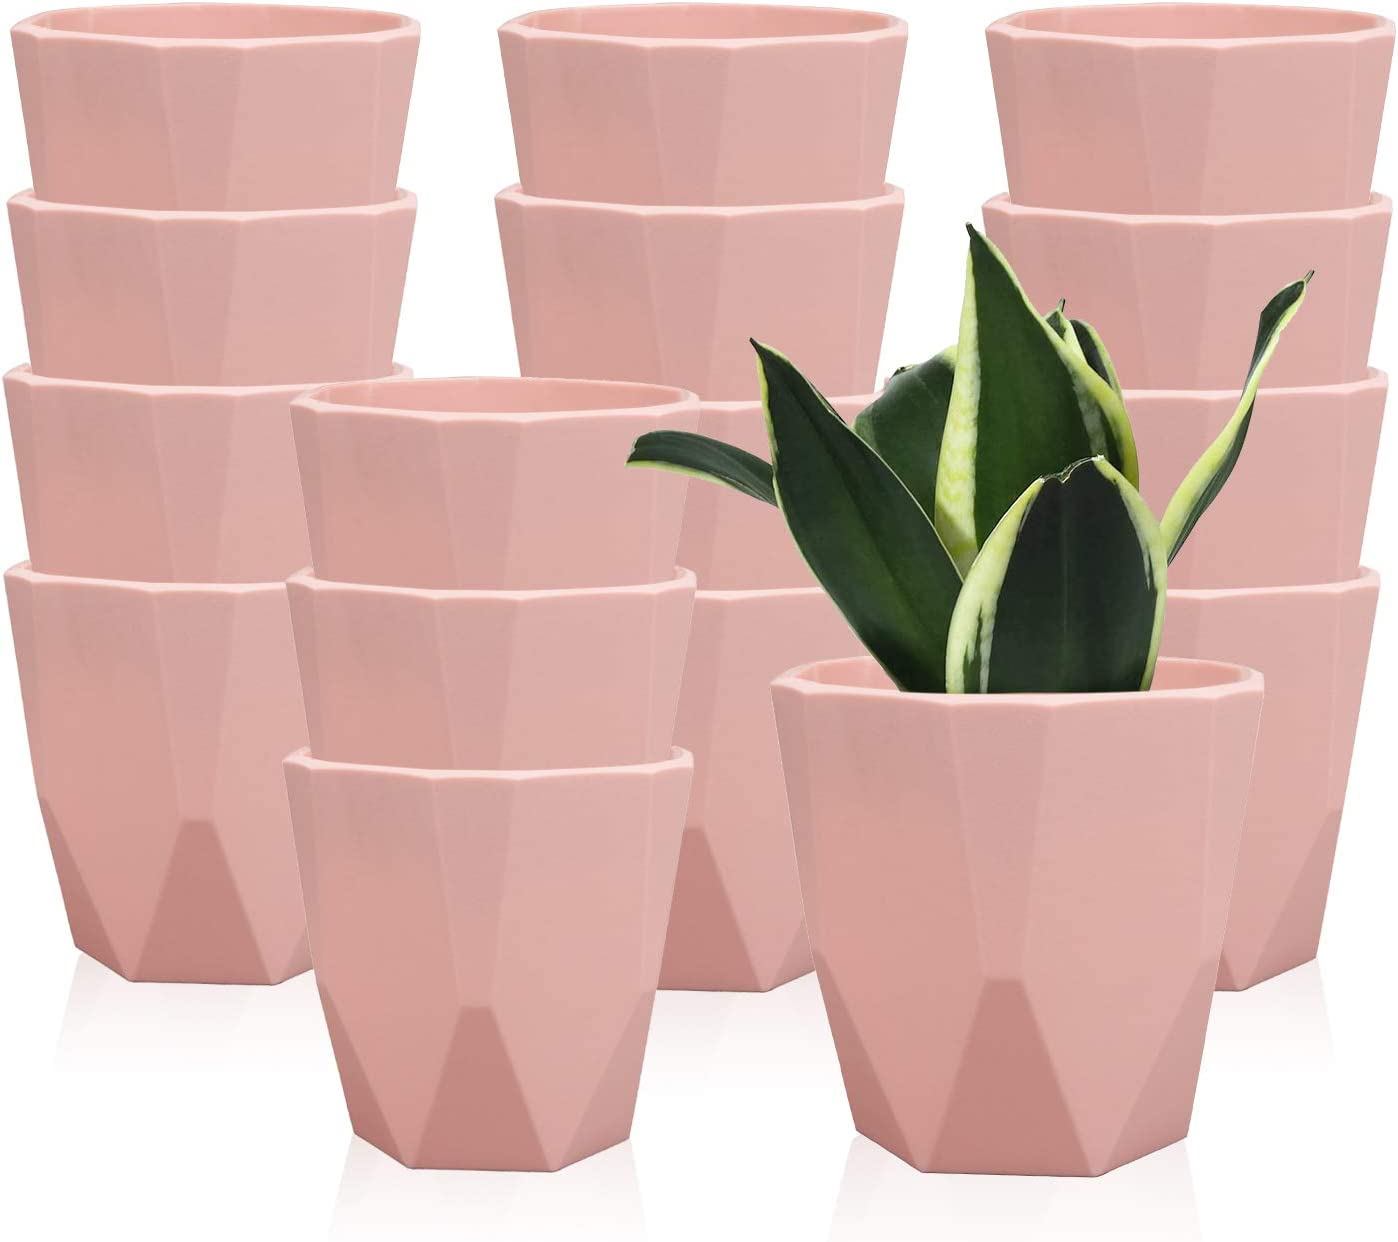 3.7 Inches / 16 pcs Plastic Plant Pots, Gardening Containers, Planters, Perfect for Indoor and Outdoor Decoration, Garden, Kitchen, Flower, Succulents (Pink)